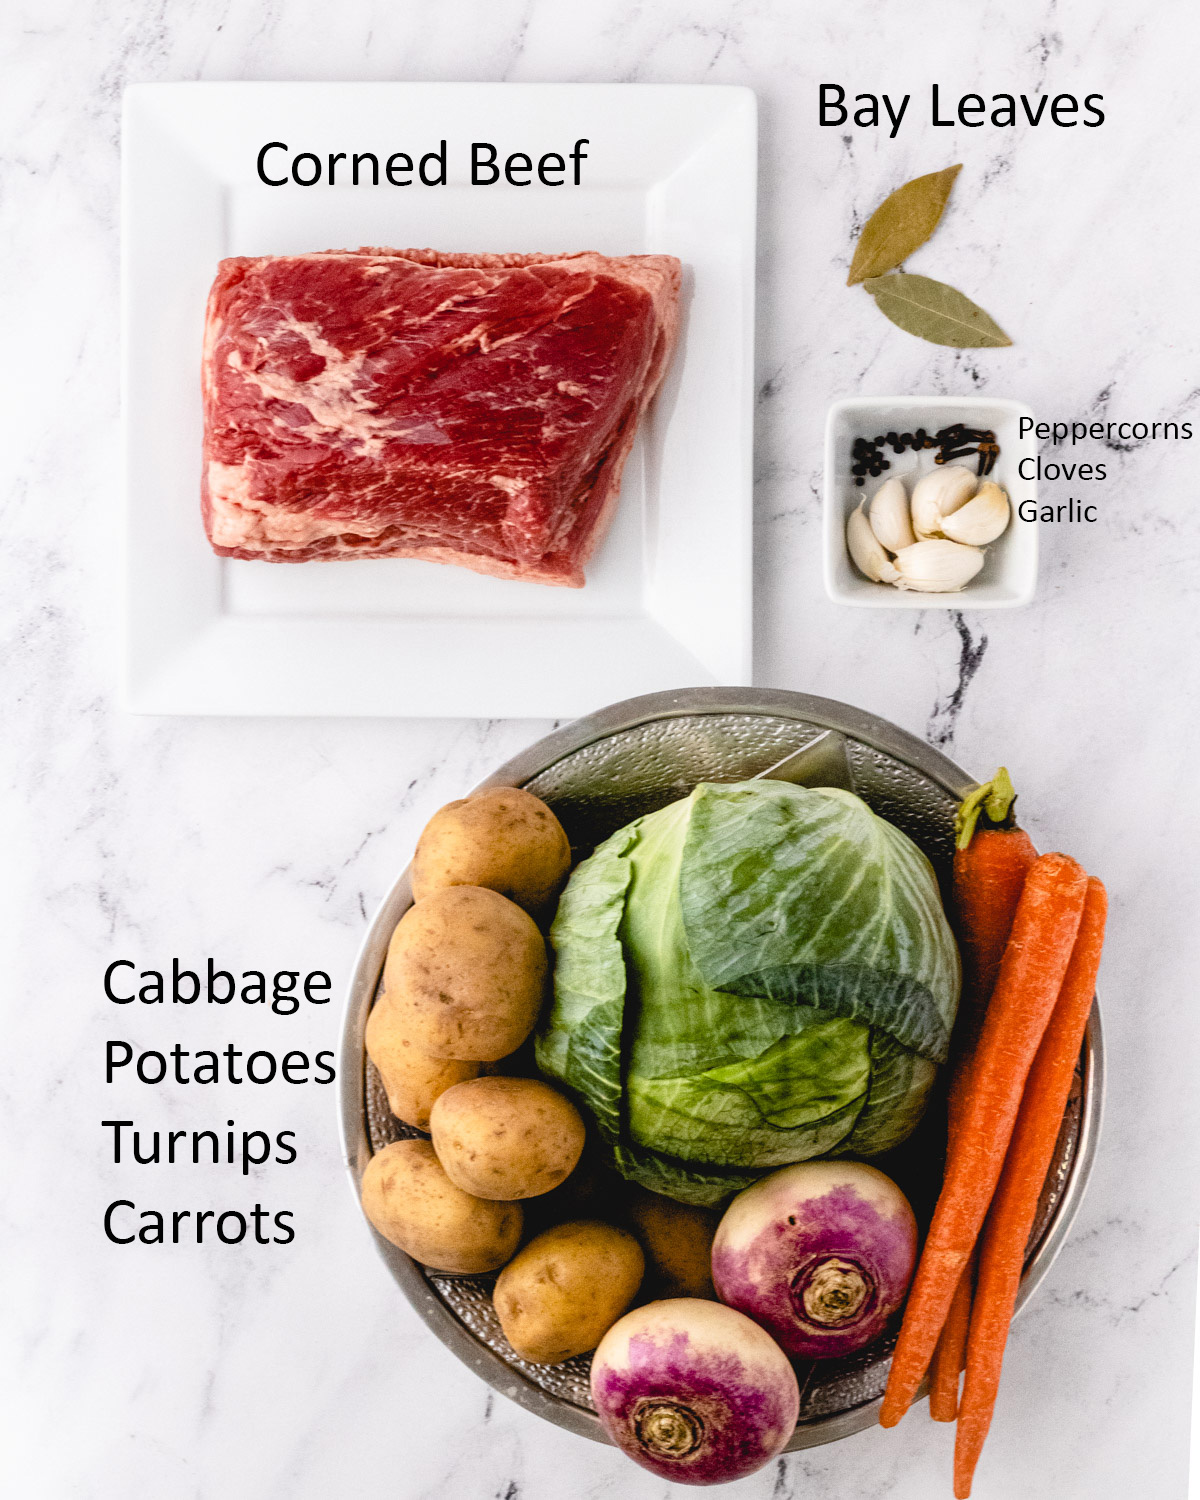 Corned beef ingredients: corned beef, bay leaves, peppercorns, cloves, garlic, cabbage, potatoes, turnips, and carrots.